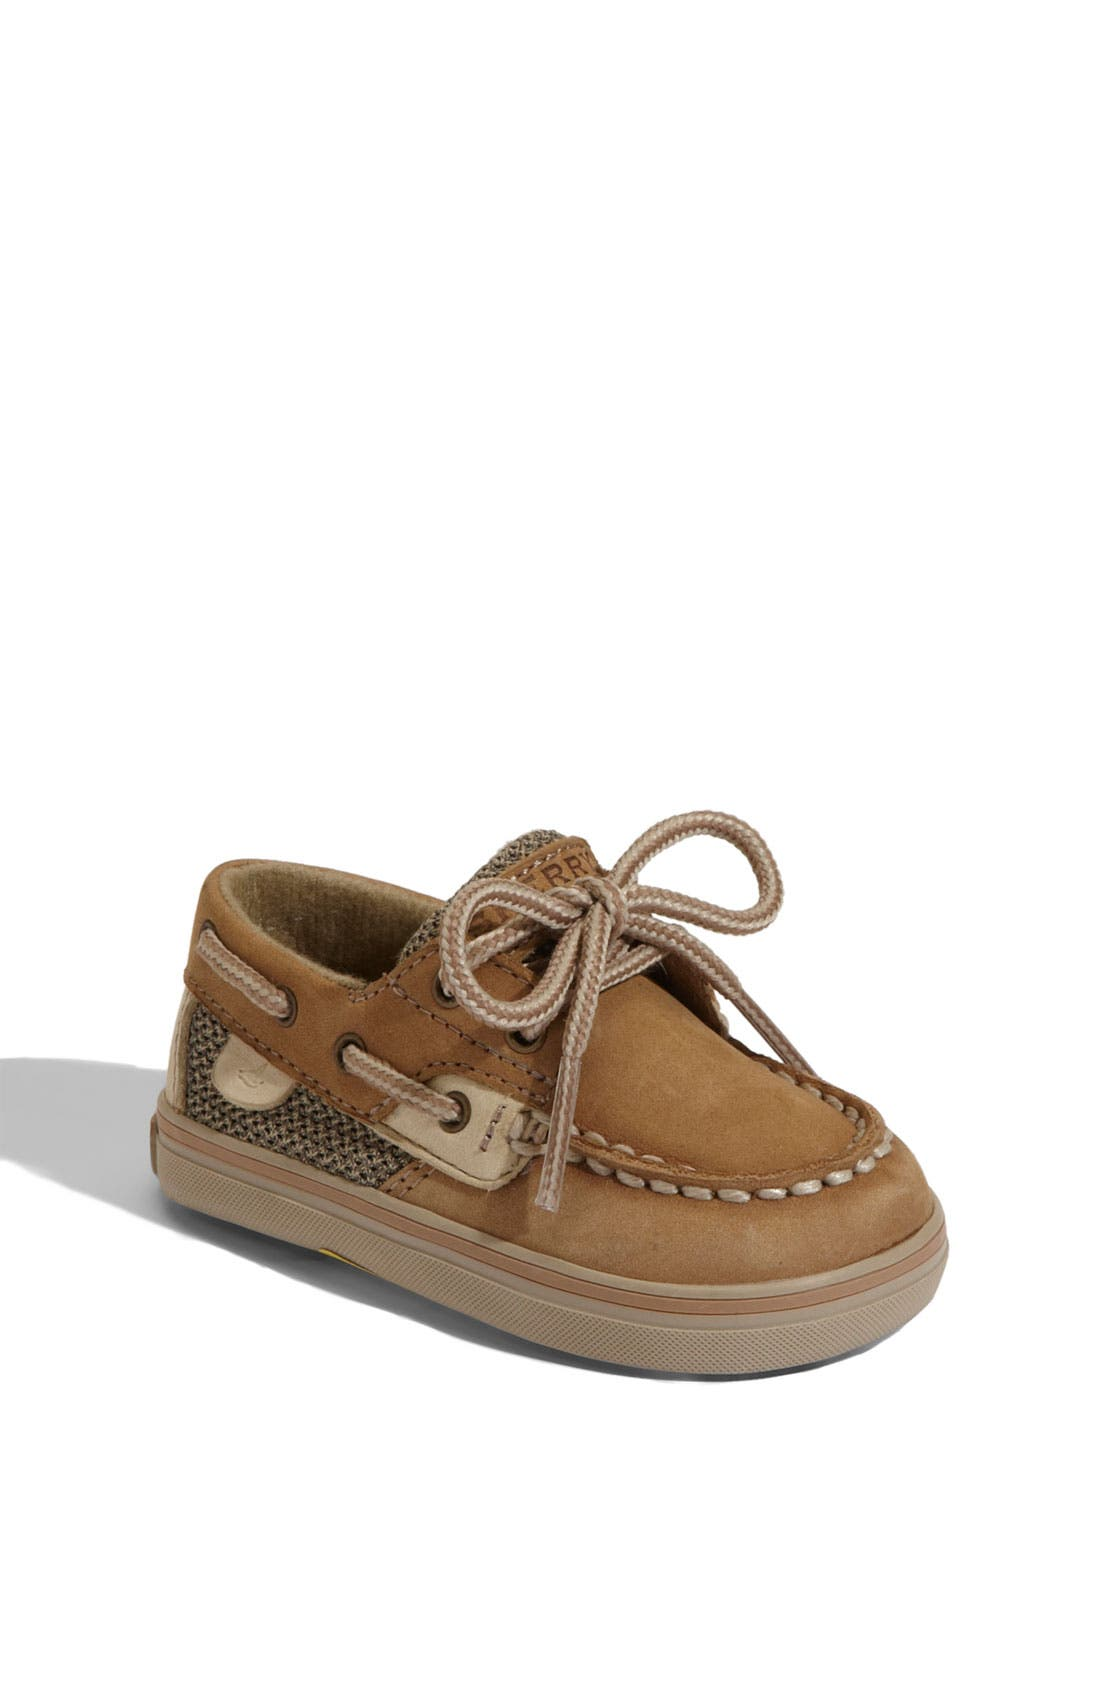 Alternate Image 1 Selected - Sperry Top-Sider® 'Bluefish' Crib Shoe (Baby)